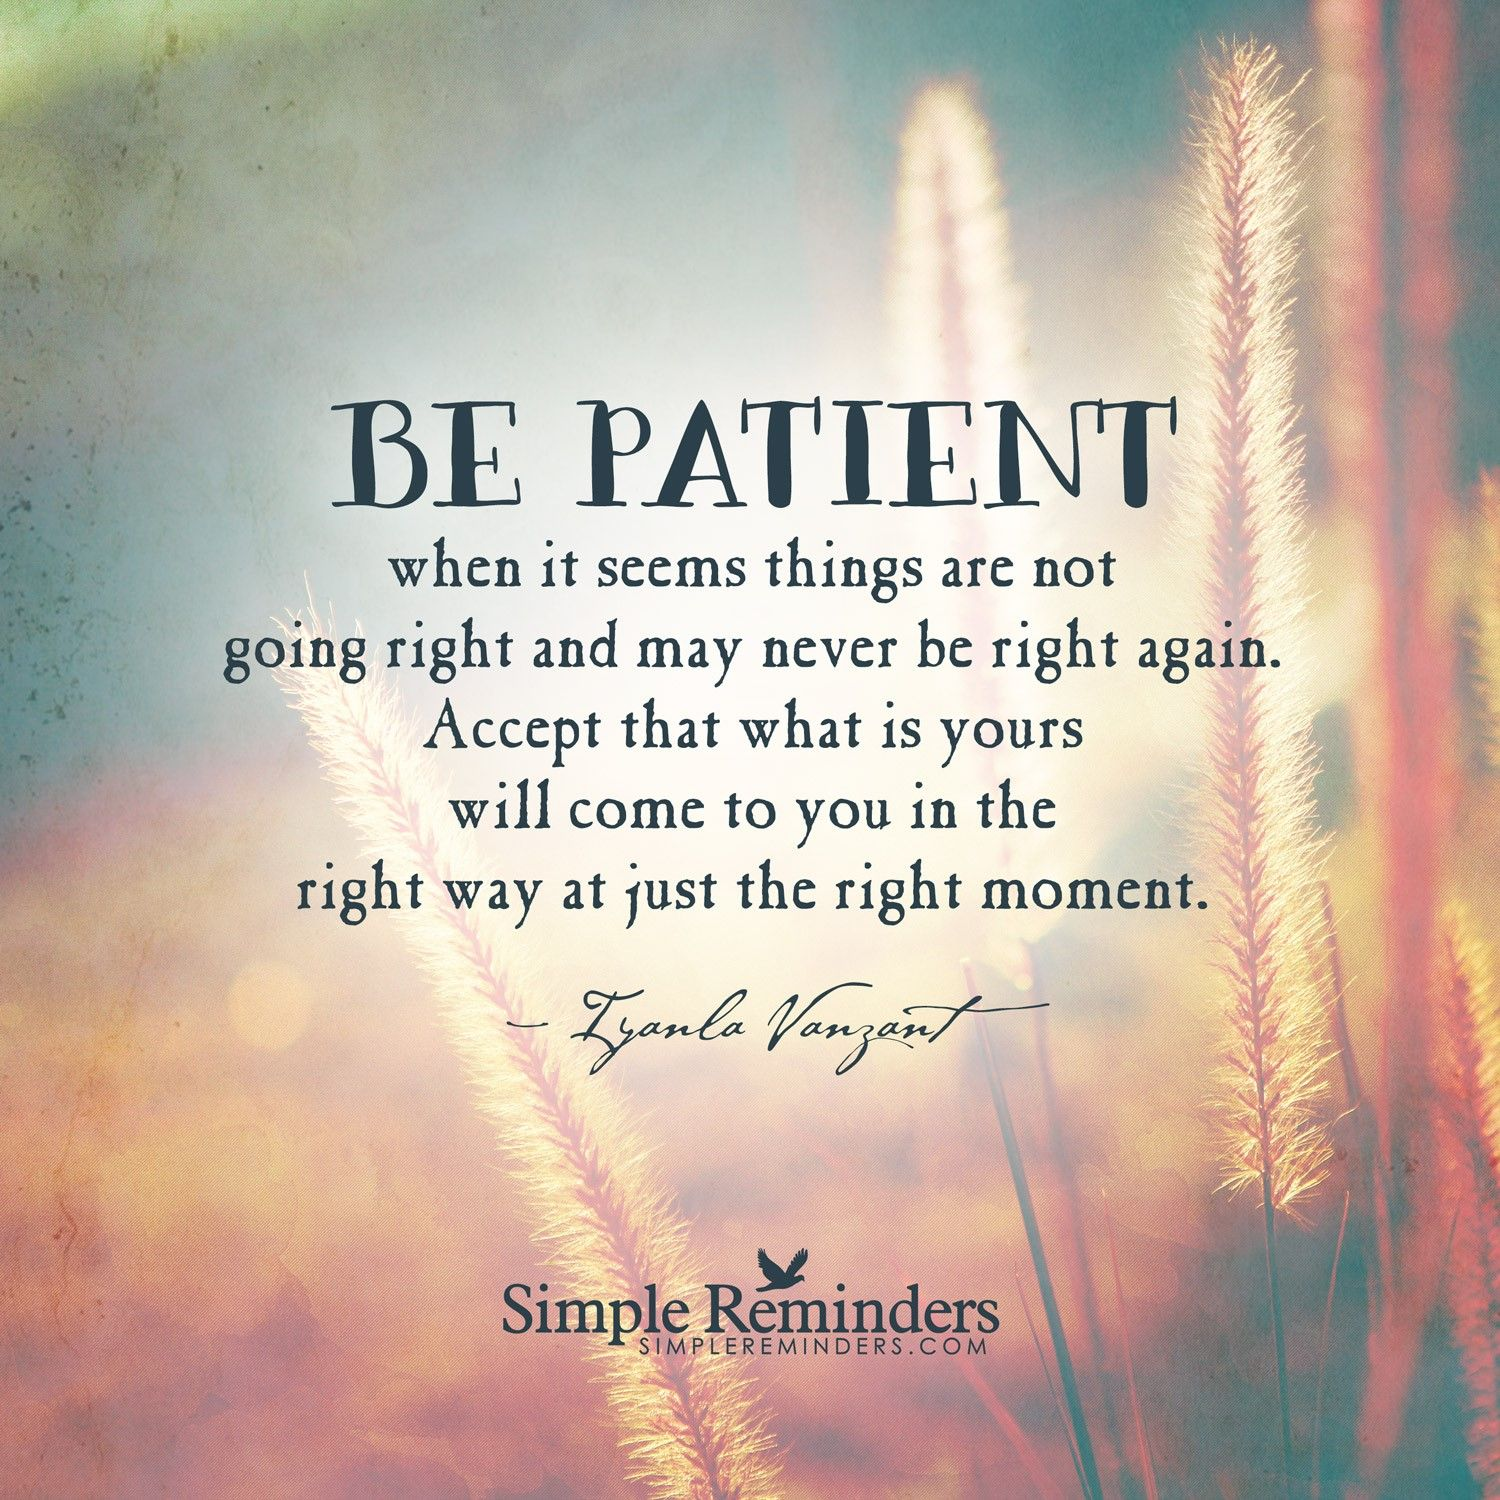 I Live In Hope Be Patient Quotes Iyanla Vanzant Quotes Life Quotes